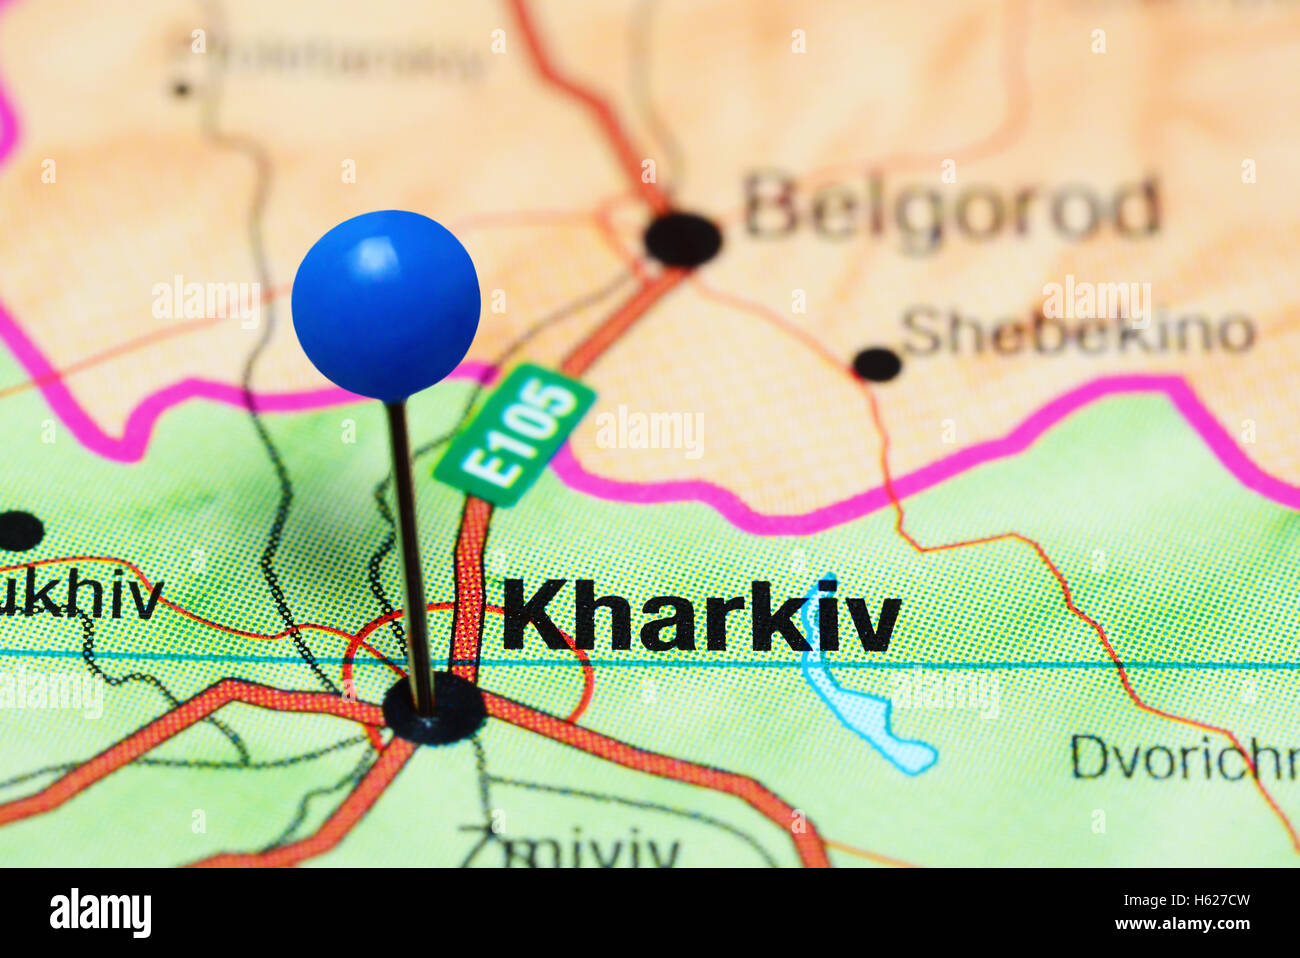 Kharkov Map Stock Photos & Kharkov Map Stock Images - Alamy on tashkent map, chi�in�u, new britain map, kryvyi rih map, gda�sk, odessa map, vinnytsia map, nizhny novgorod, kazan map, sevastopol map, rio de janeiro map, bologna map, baku map, dnieper river, bratislava map, dnipropetrovsk map, oslo map, kiev map, kyiv map, zagreb map, vladivostok map, soviet union map, poznan map, bila tserkva map,